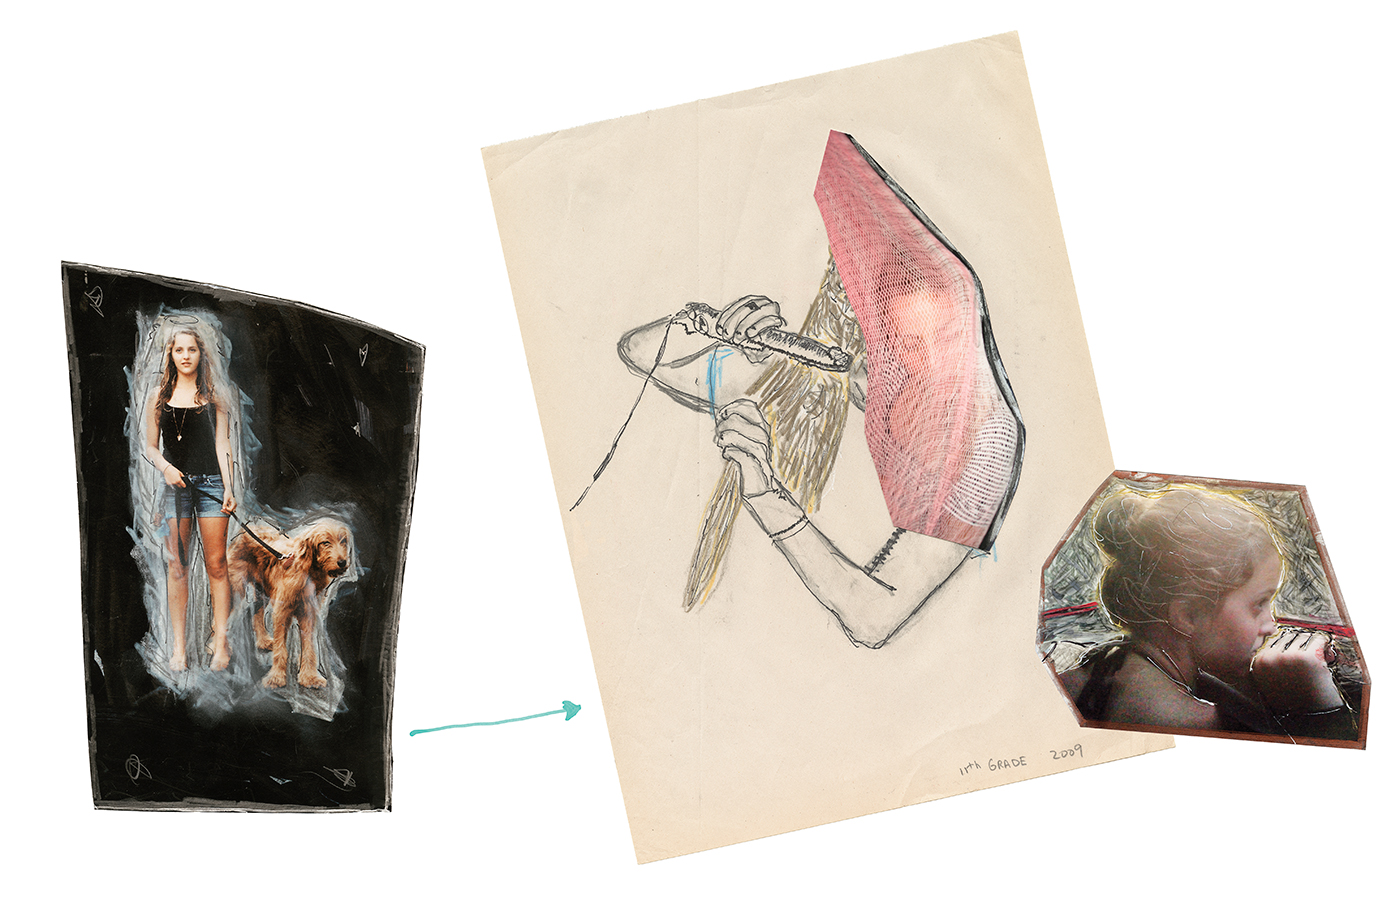 Jim Goldberg, Ruby, 11th Grade from Ruby Every Fall, 2009/2015, mixed media collage, dimensions variable